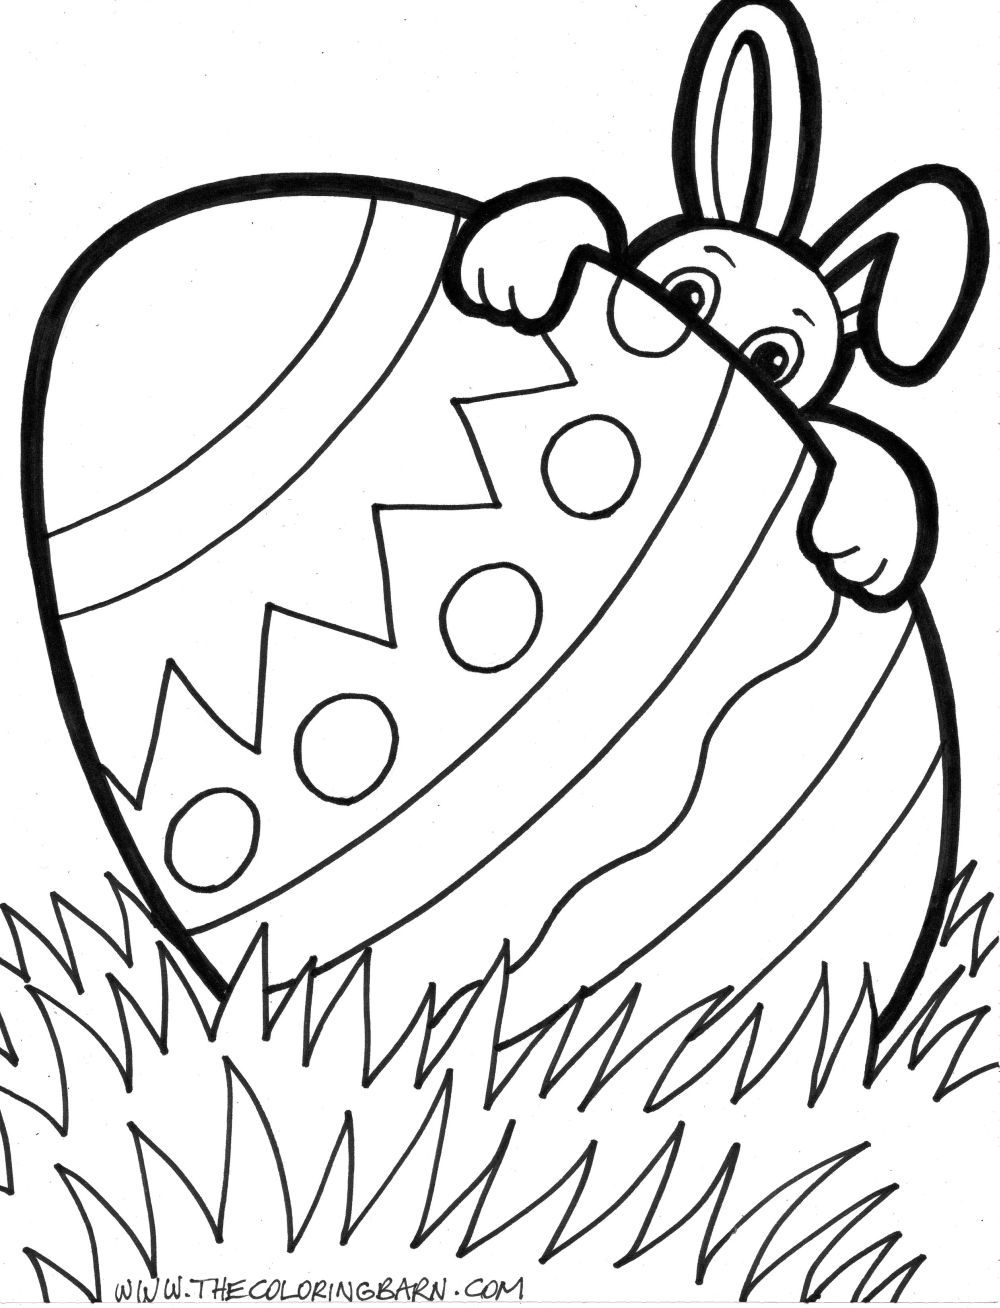 Easter Colouring In Pages Easter Coloring Pages Printable Easter Bunny Colouring Bunny Coloring Pages